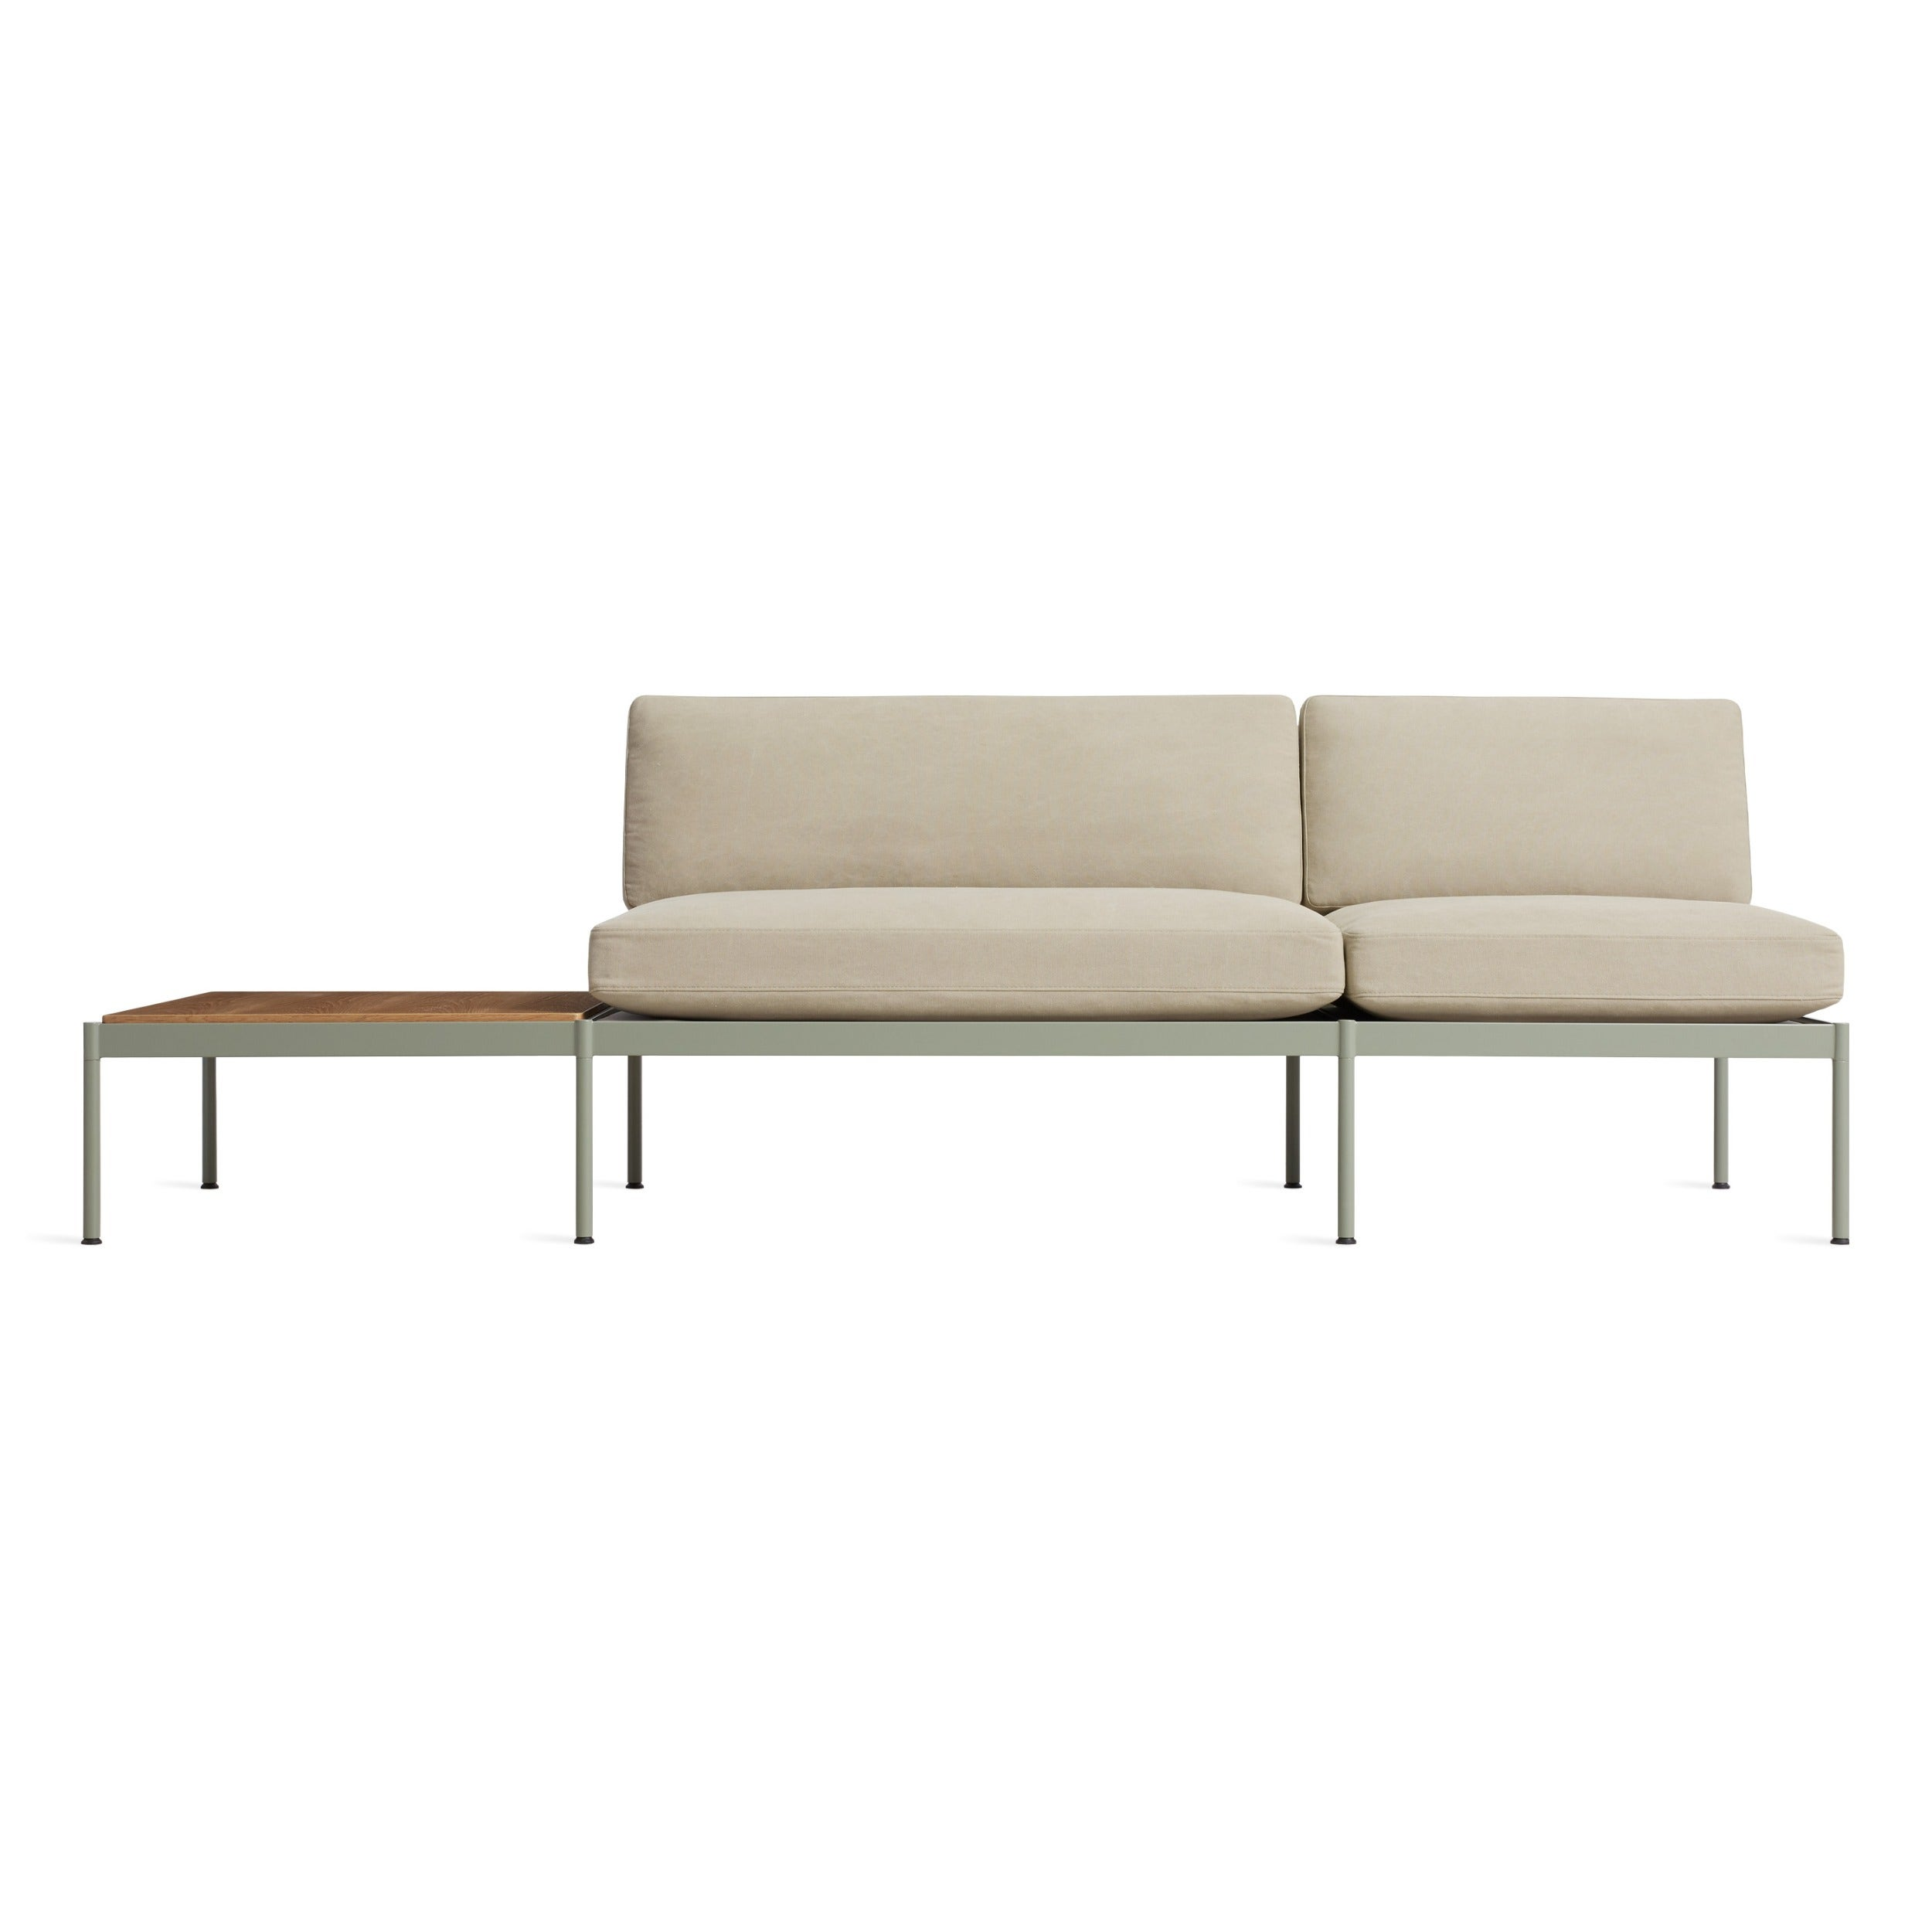 "Chassis 104"" Right/Left Sofa with Table"